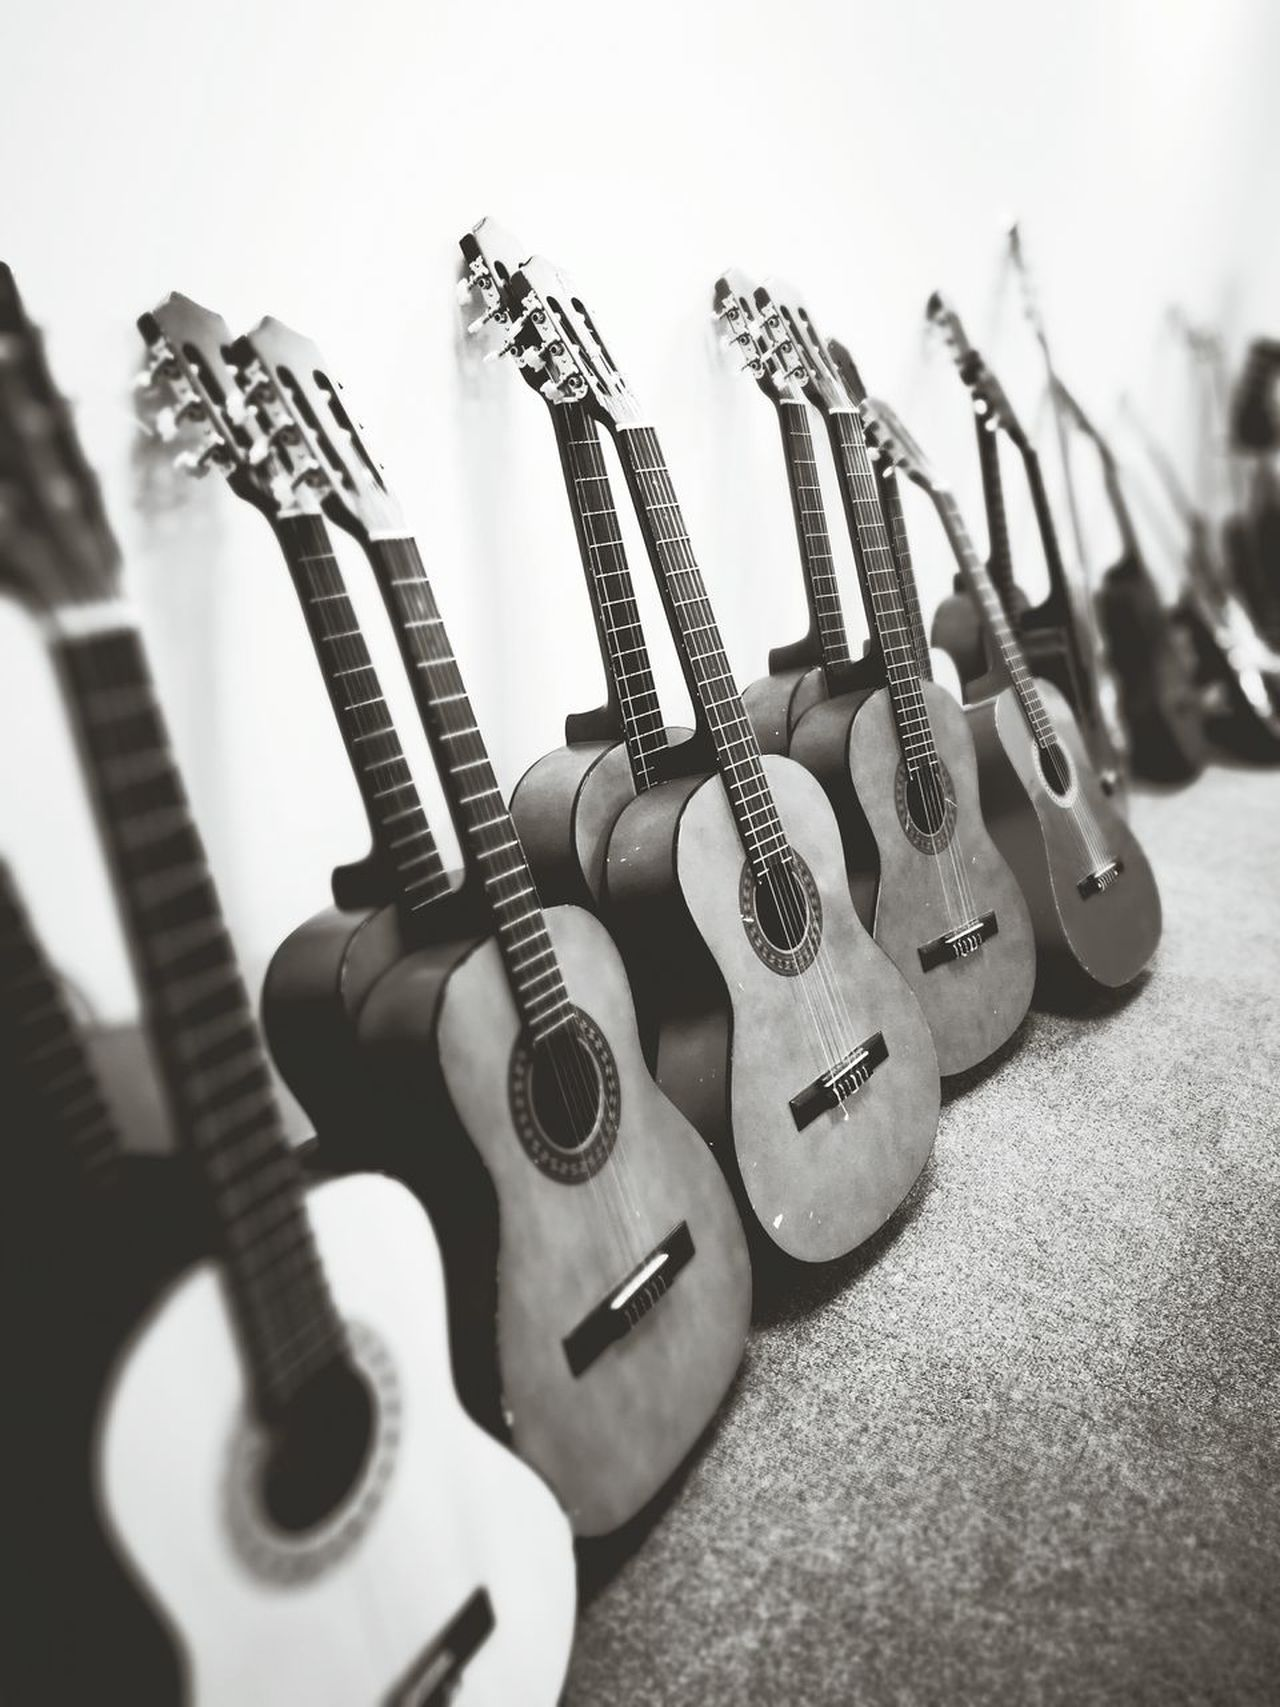 Musical Instrument Music Arts Culture And Entertainment Guitar Musical Instrument String No People Electric Guitar Indoors  Day Close-up Acoustic Guitar Acoustic Learn Leisure Activity Bw Photography Photographer Picoftheday